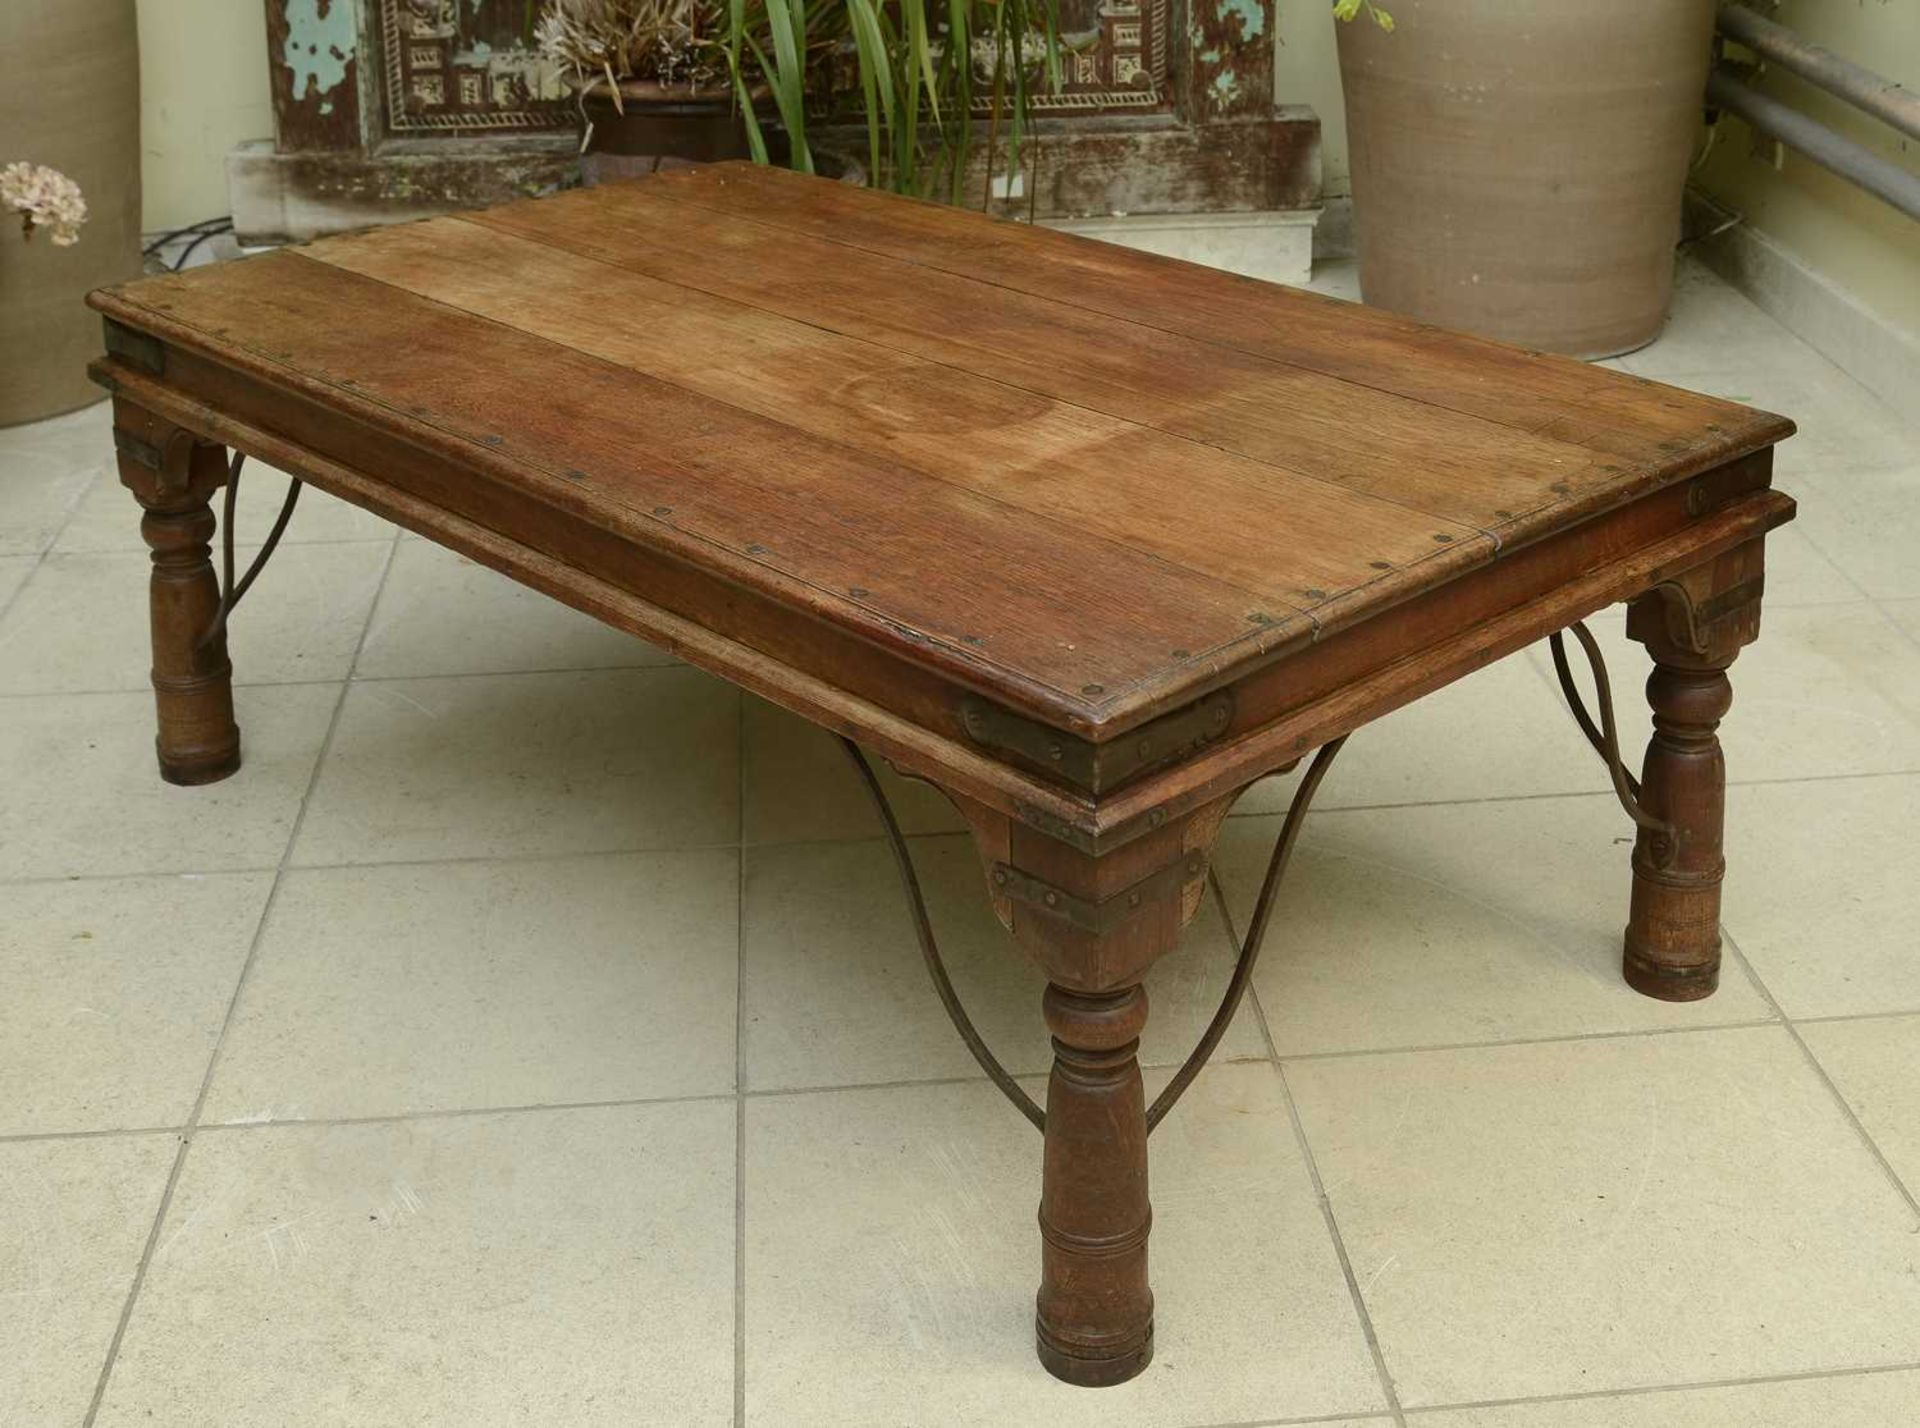 An Indian hardwood low table, - Image 3 of 3